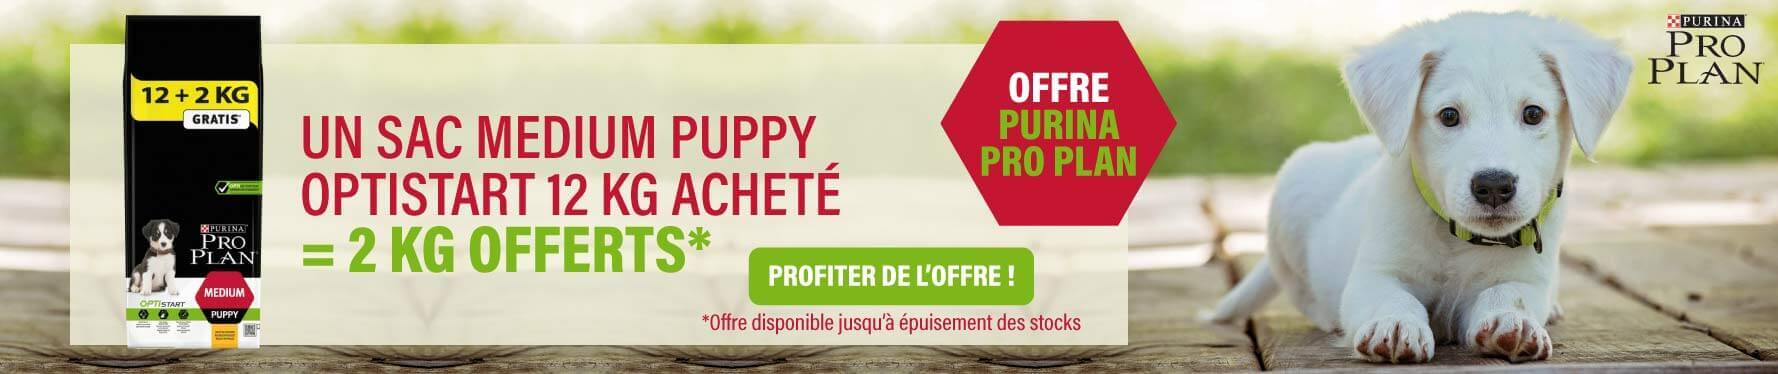 Offre Purina Proplan Puppy Mars